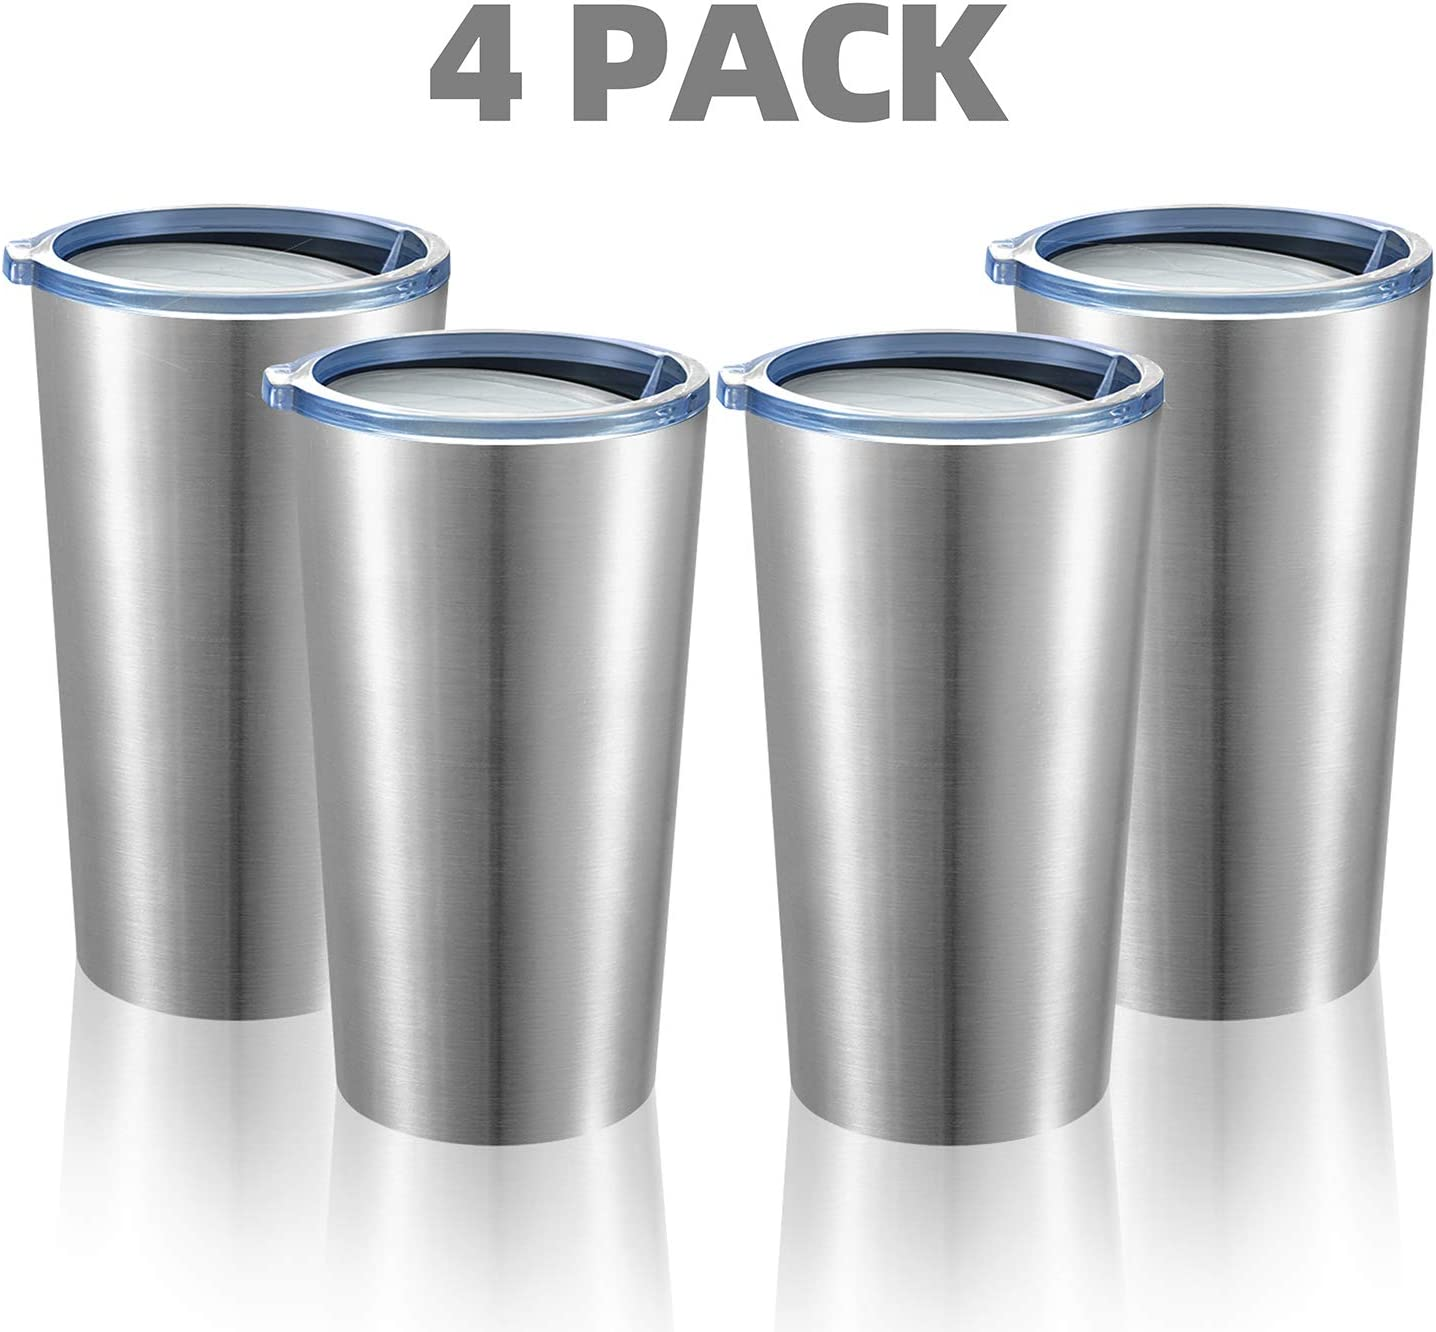 MEWAY 16oz Tumbler 4 Pack Stainless Steel Travel Coffee Mug with Lids Double Wall Insulated Coffee Cup for Home, Office, Travel Great (Silver, 4 pack)